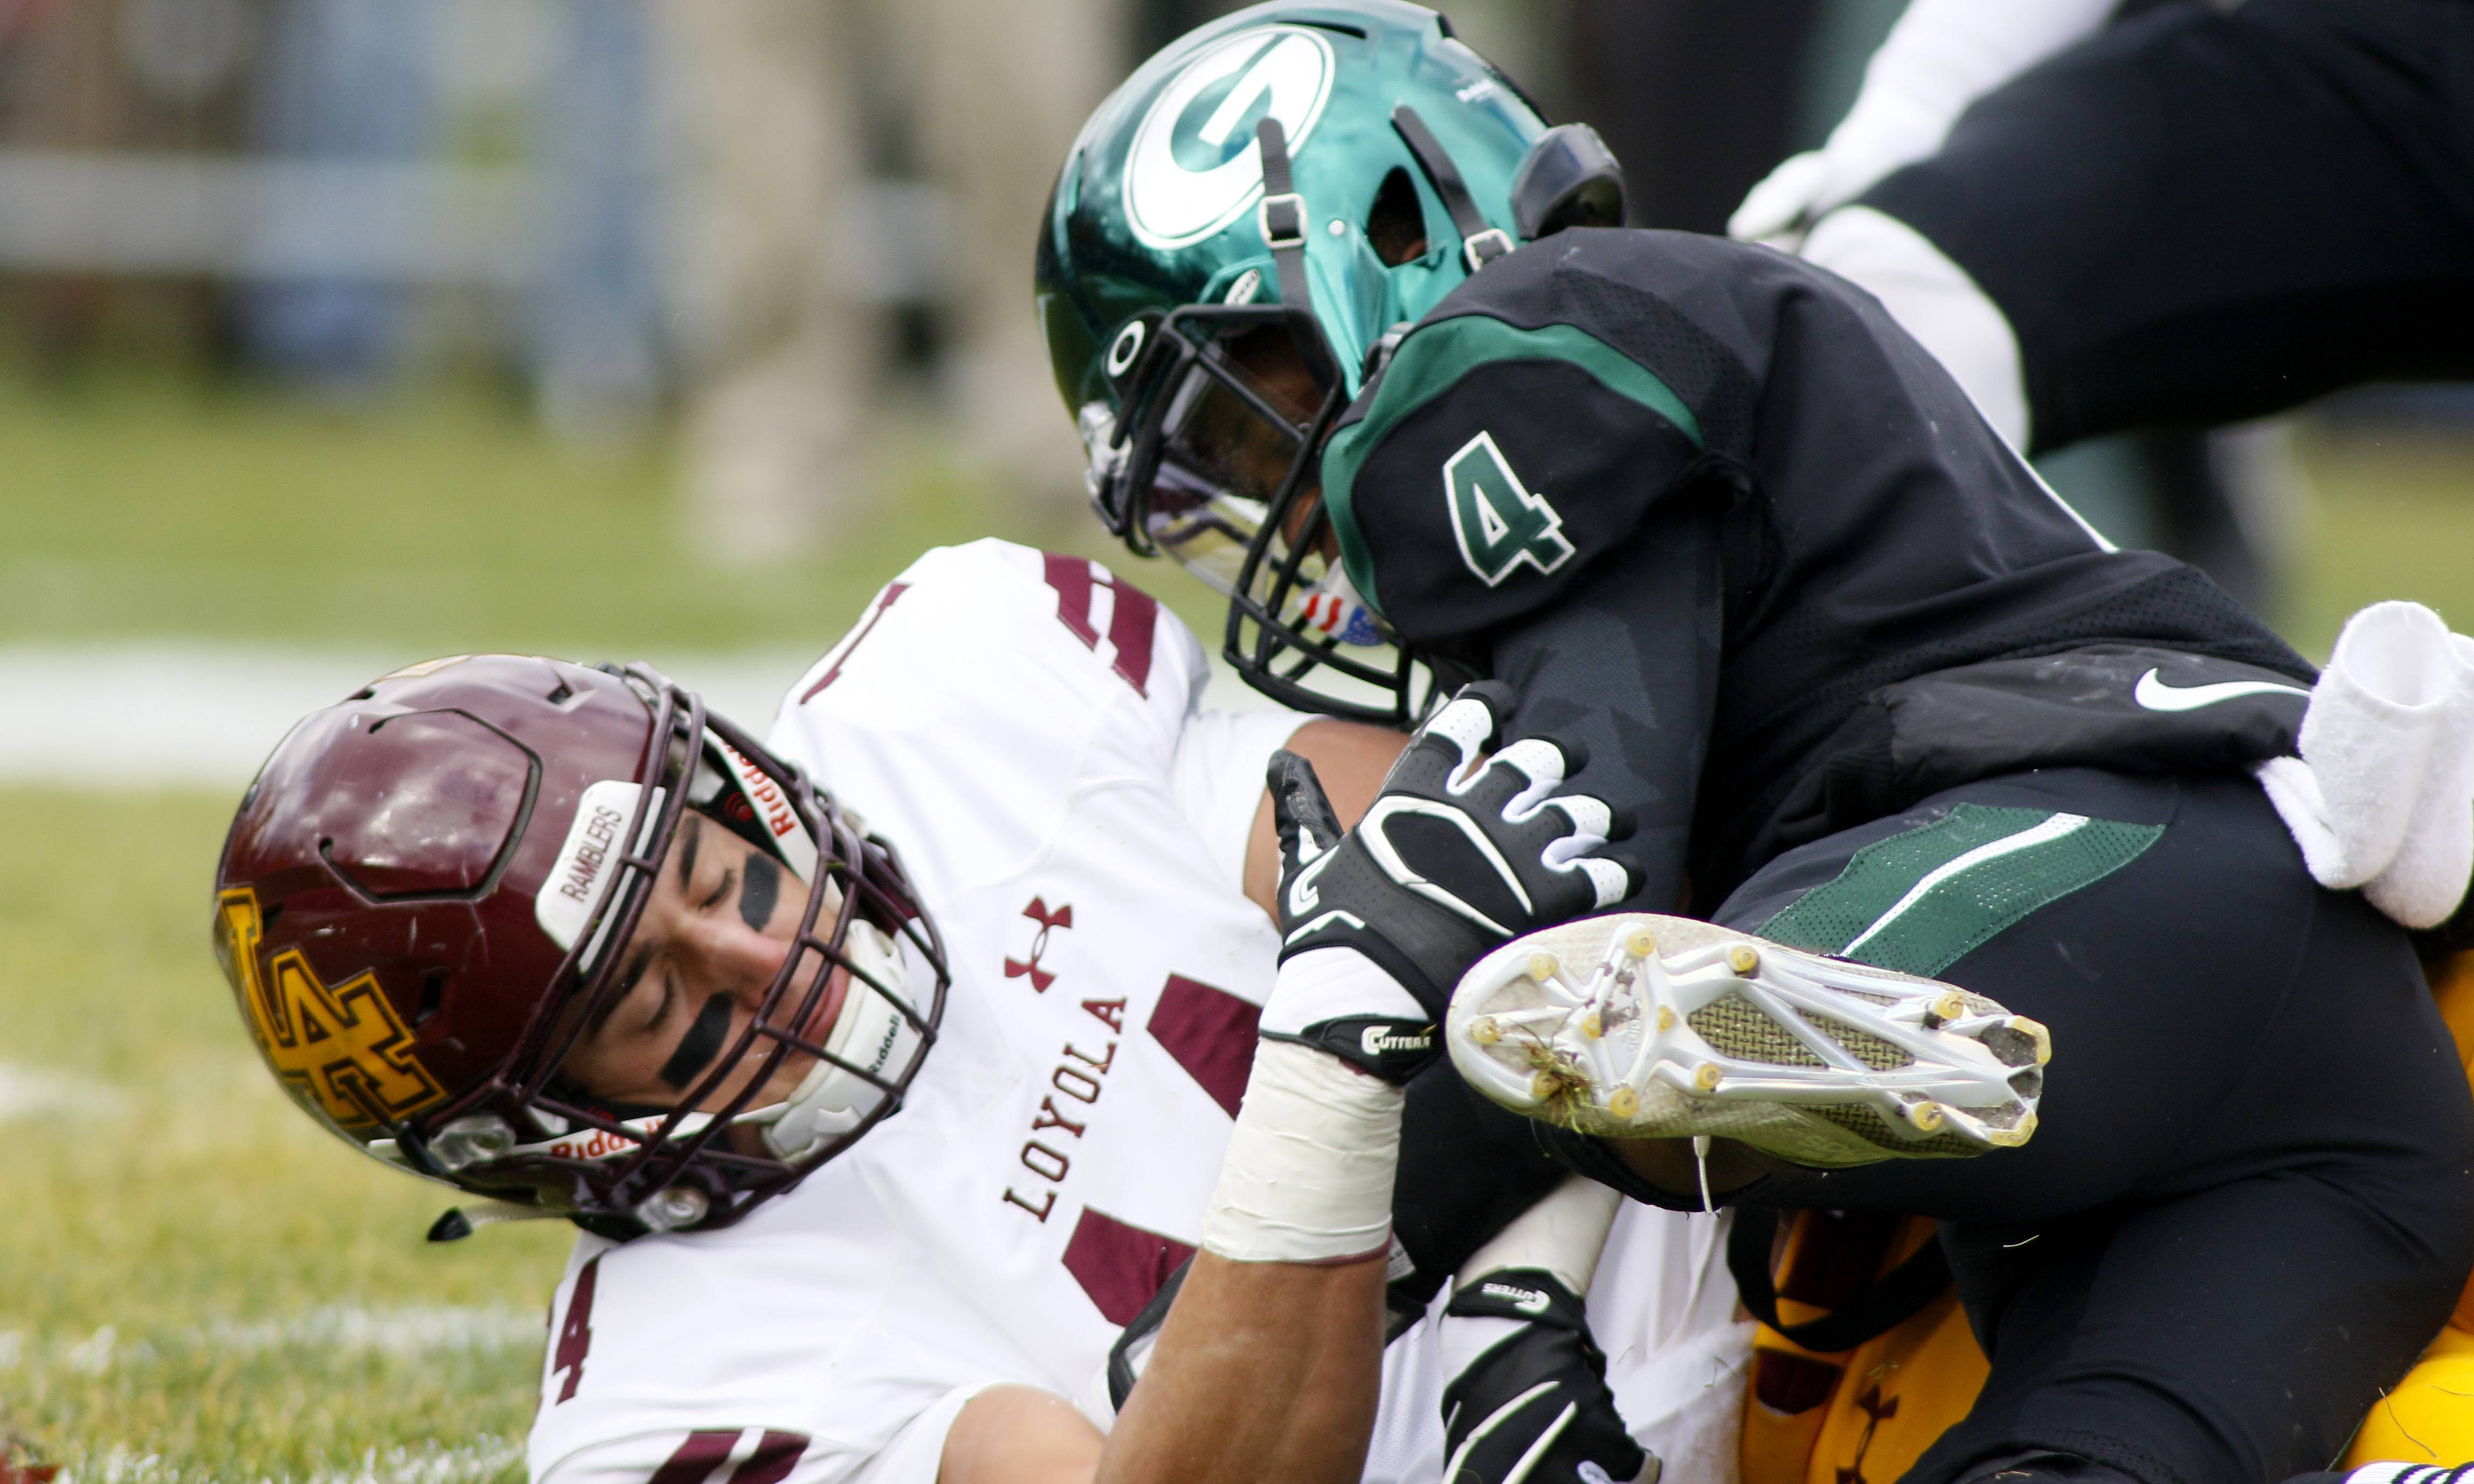 Loyola Academy knocks Glenbard West out of state football playoffs